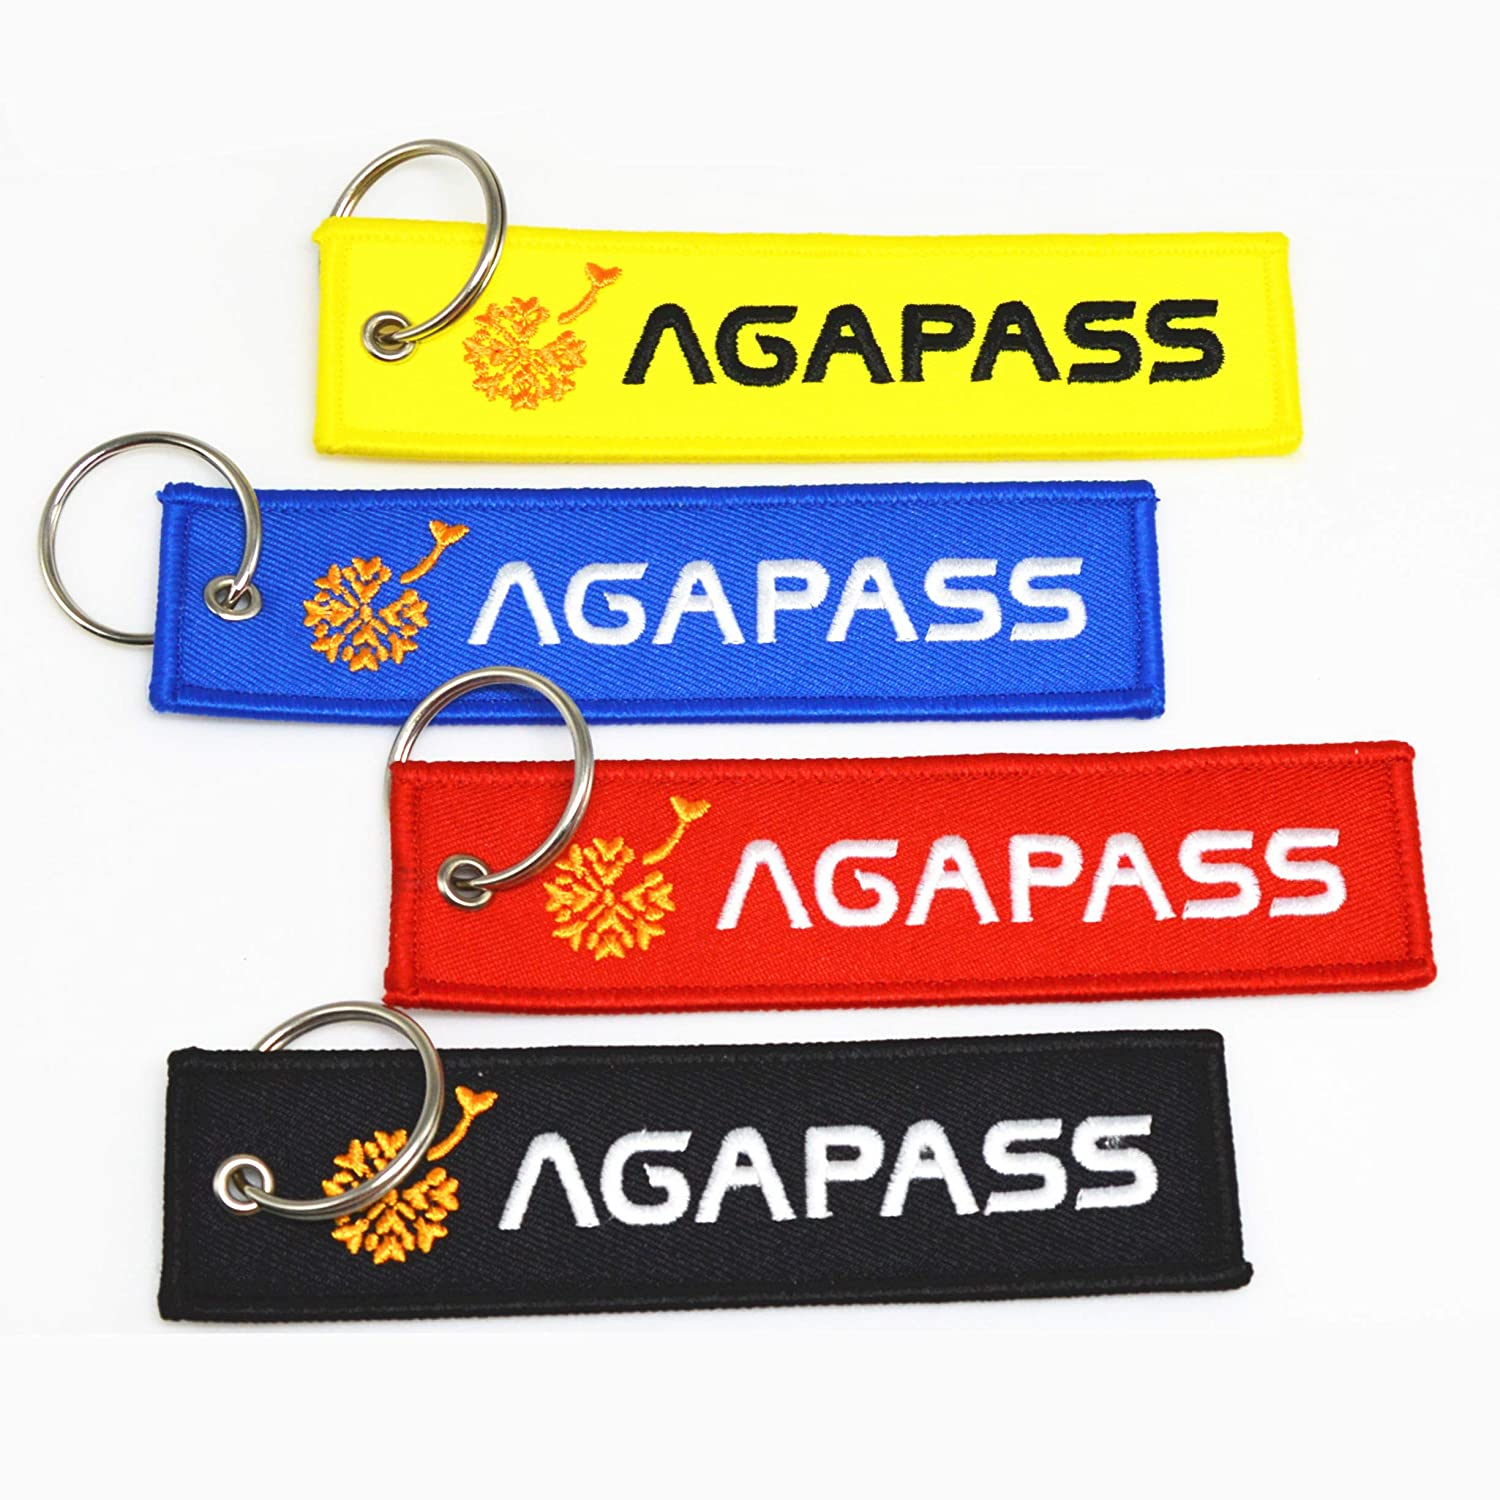 Blue AGAPASS Key Chain,Key Tag with Key Ring Cars Both Sides Embroidered Key Chain Tag Scooters EDC for Motorcycles